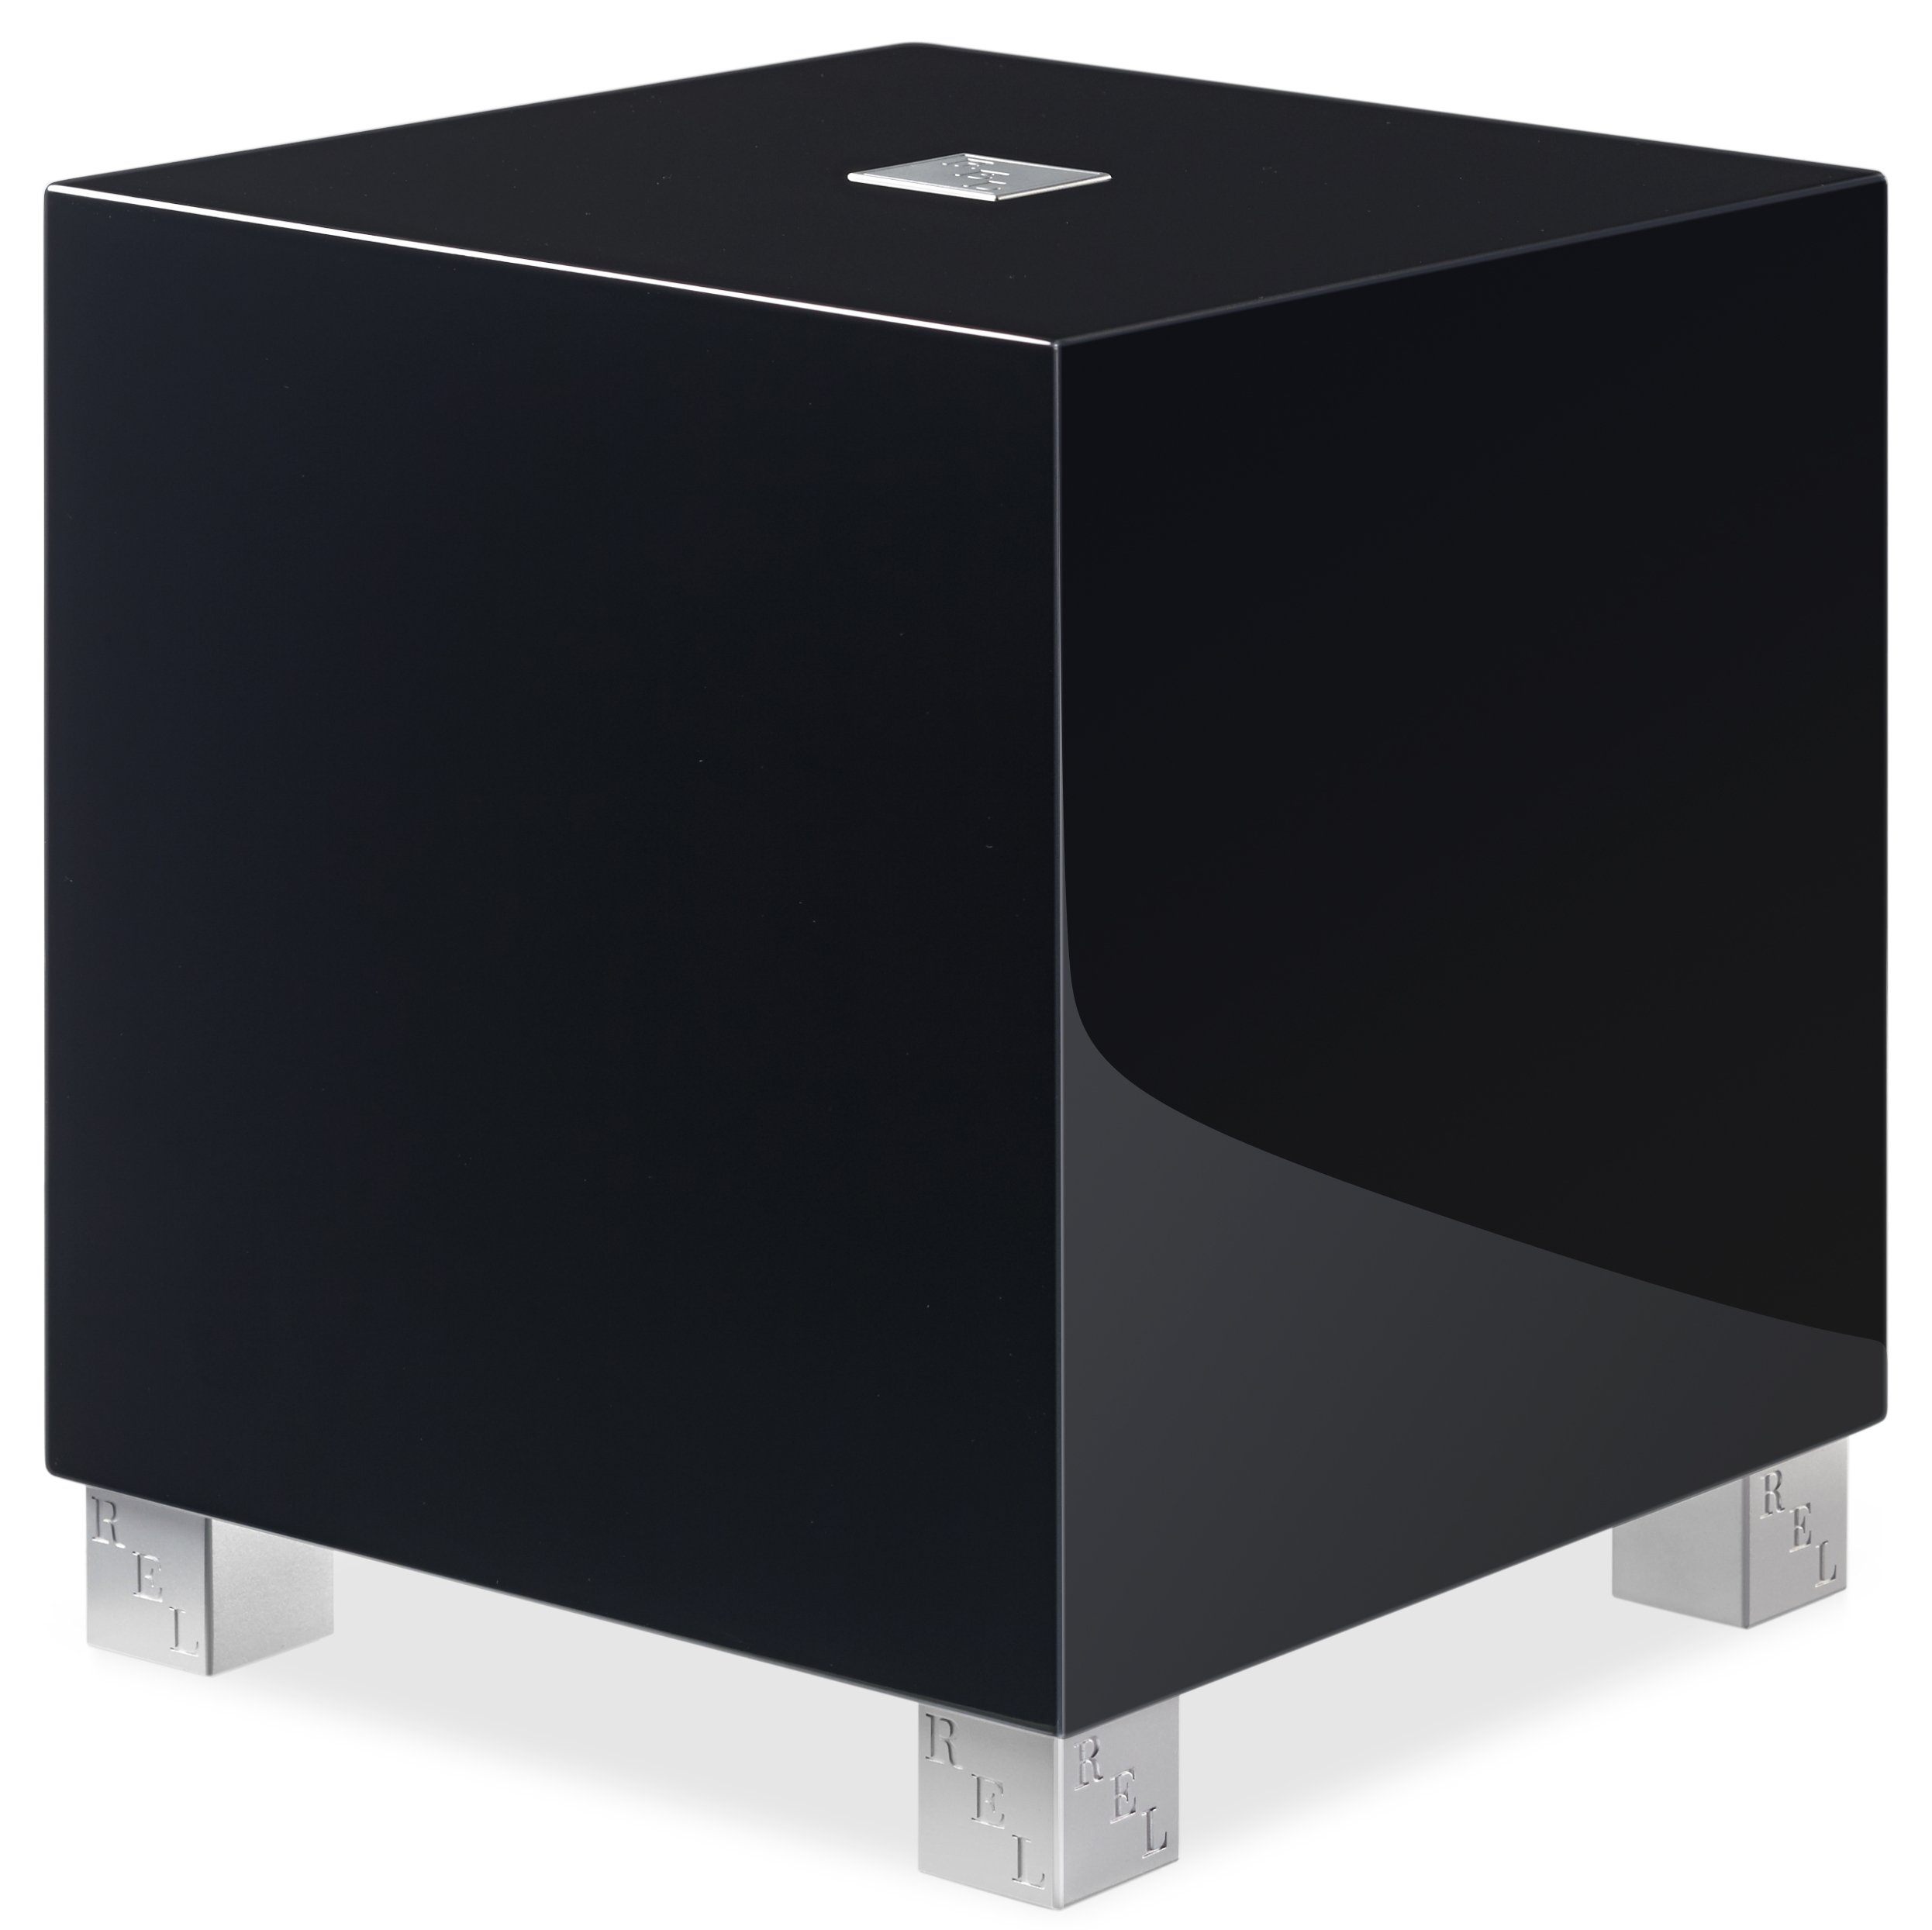 REL Acoustics T/5i Subwoofer, 8 inch Down-Firing Driver, Arrow wireless port, High Gloss Black by REL Acoustics